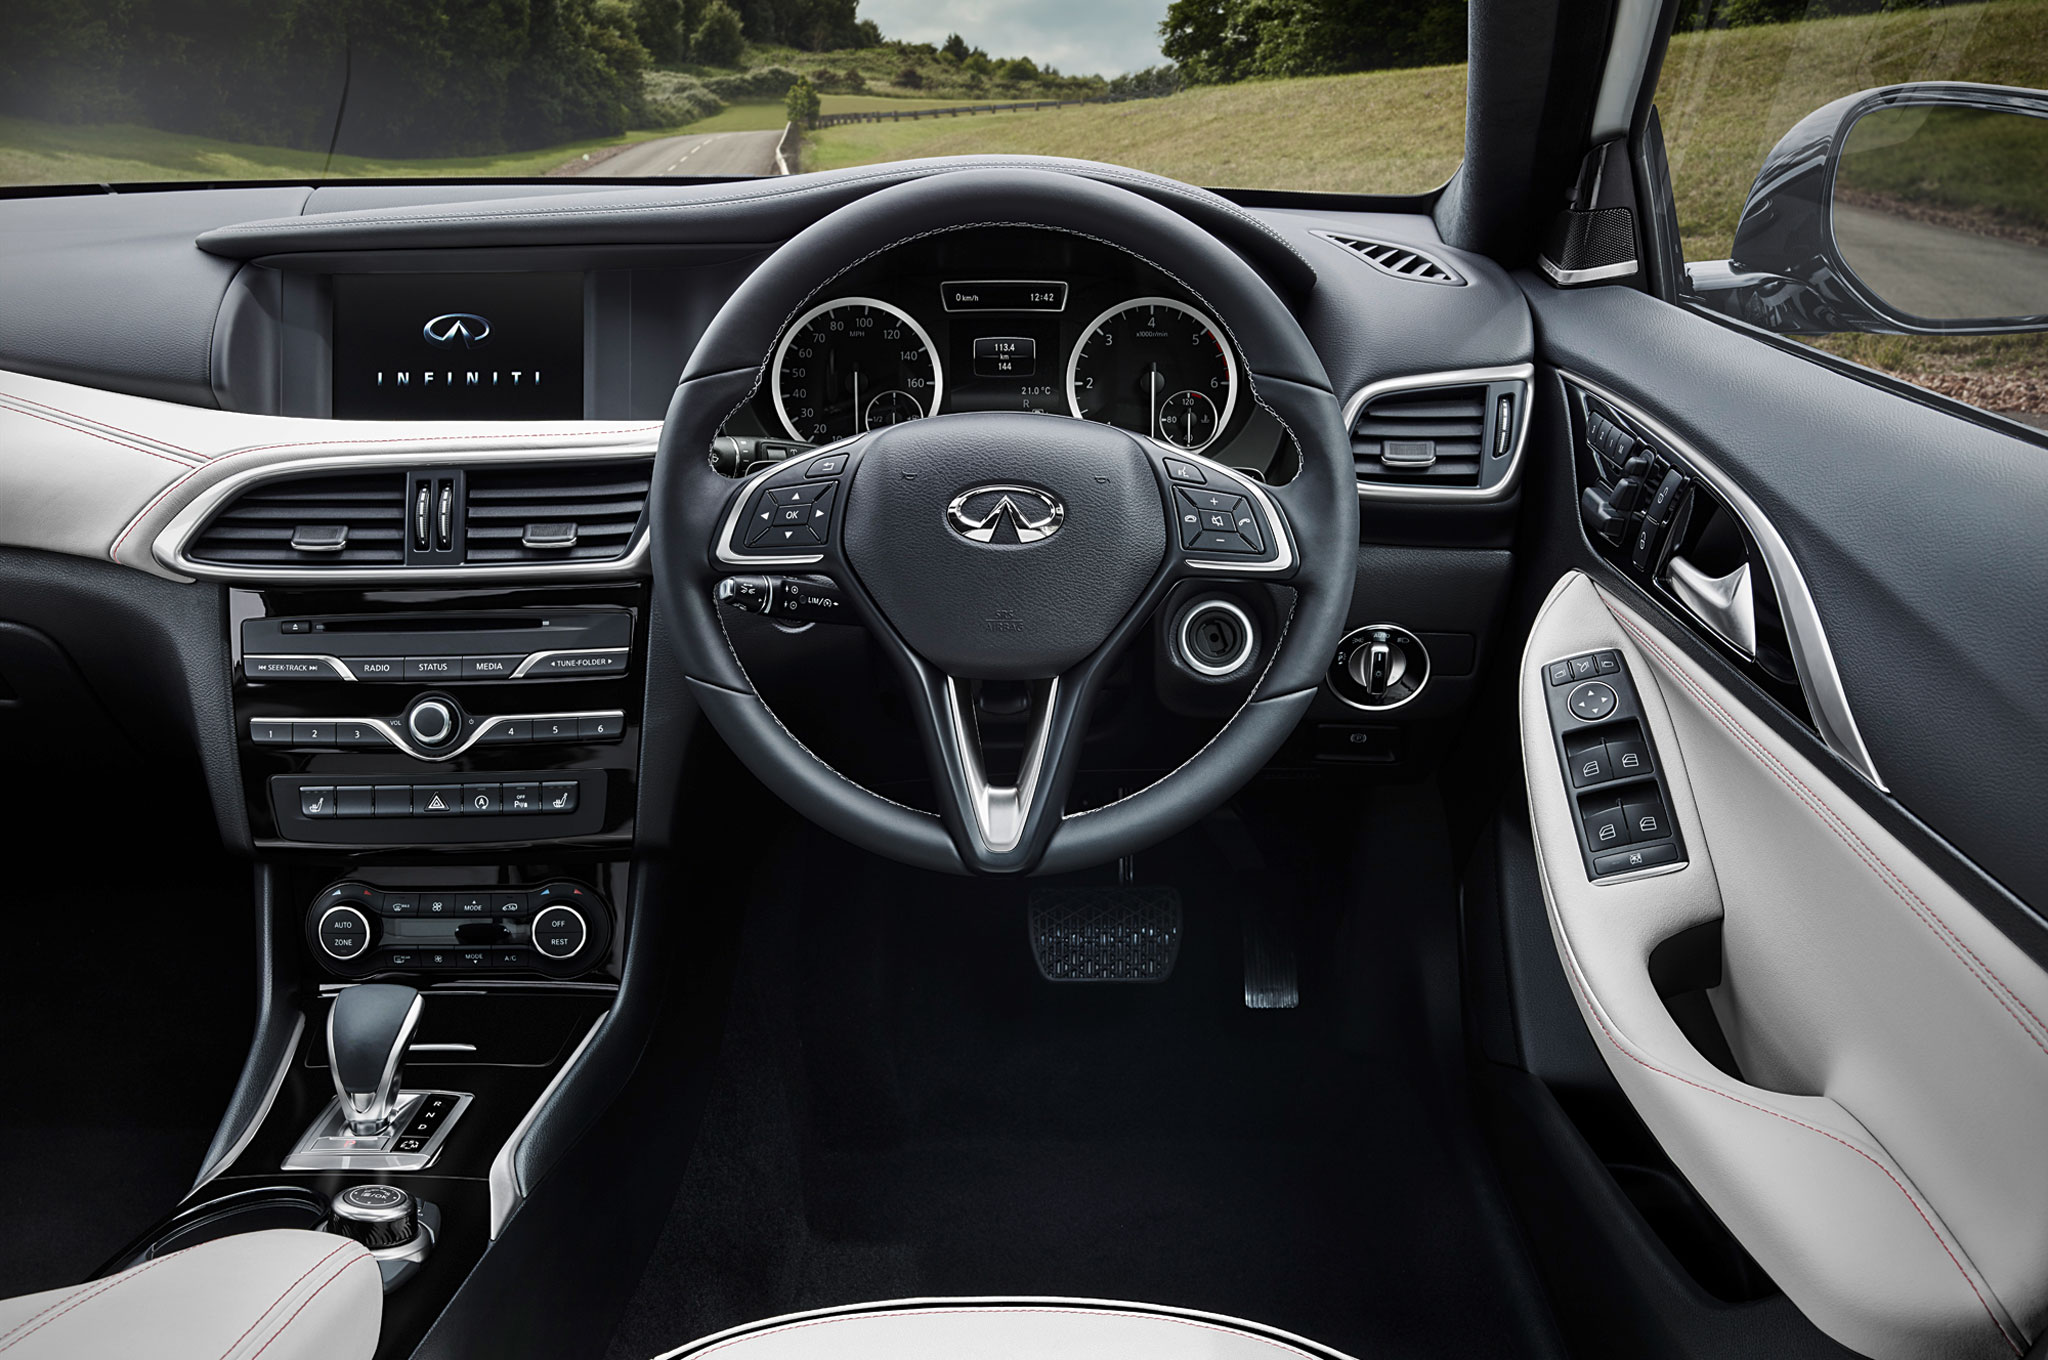 2017 infiniti q30 interior sports numerous mercedes benz